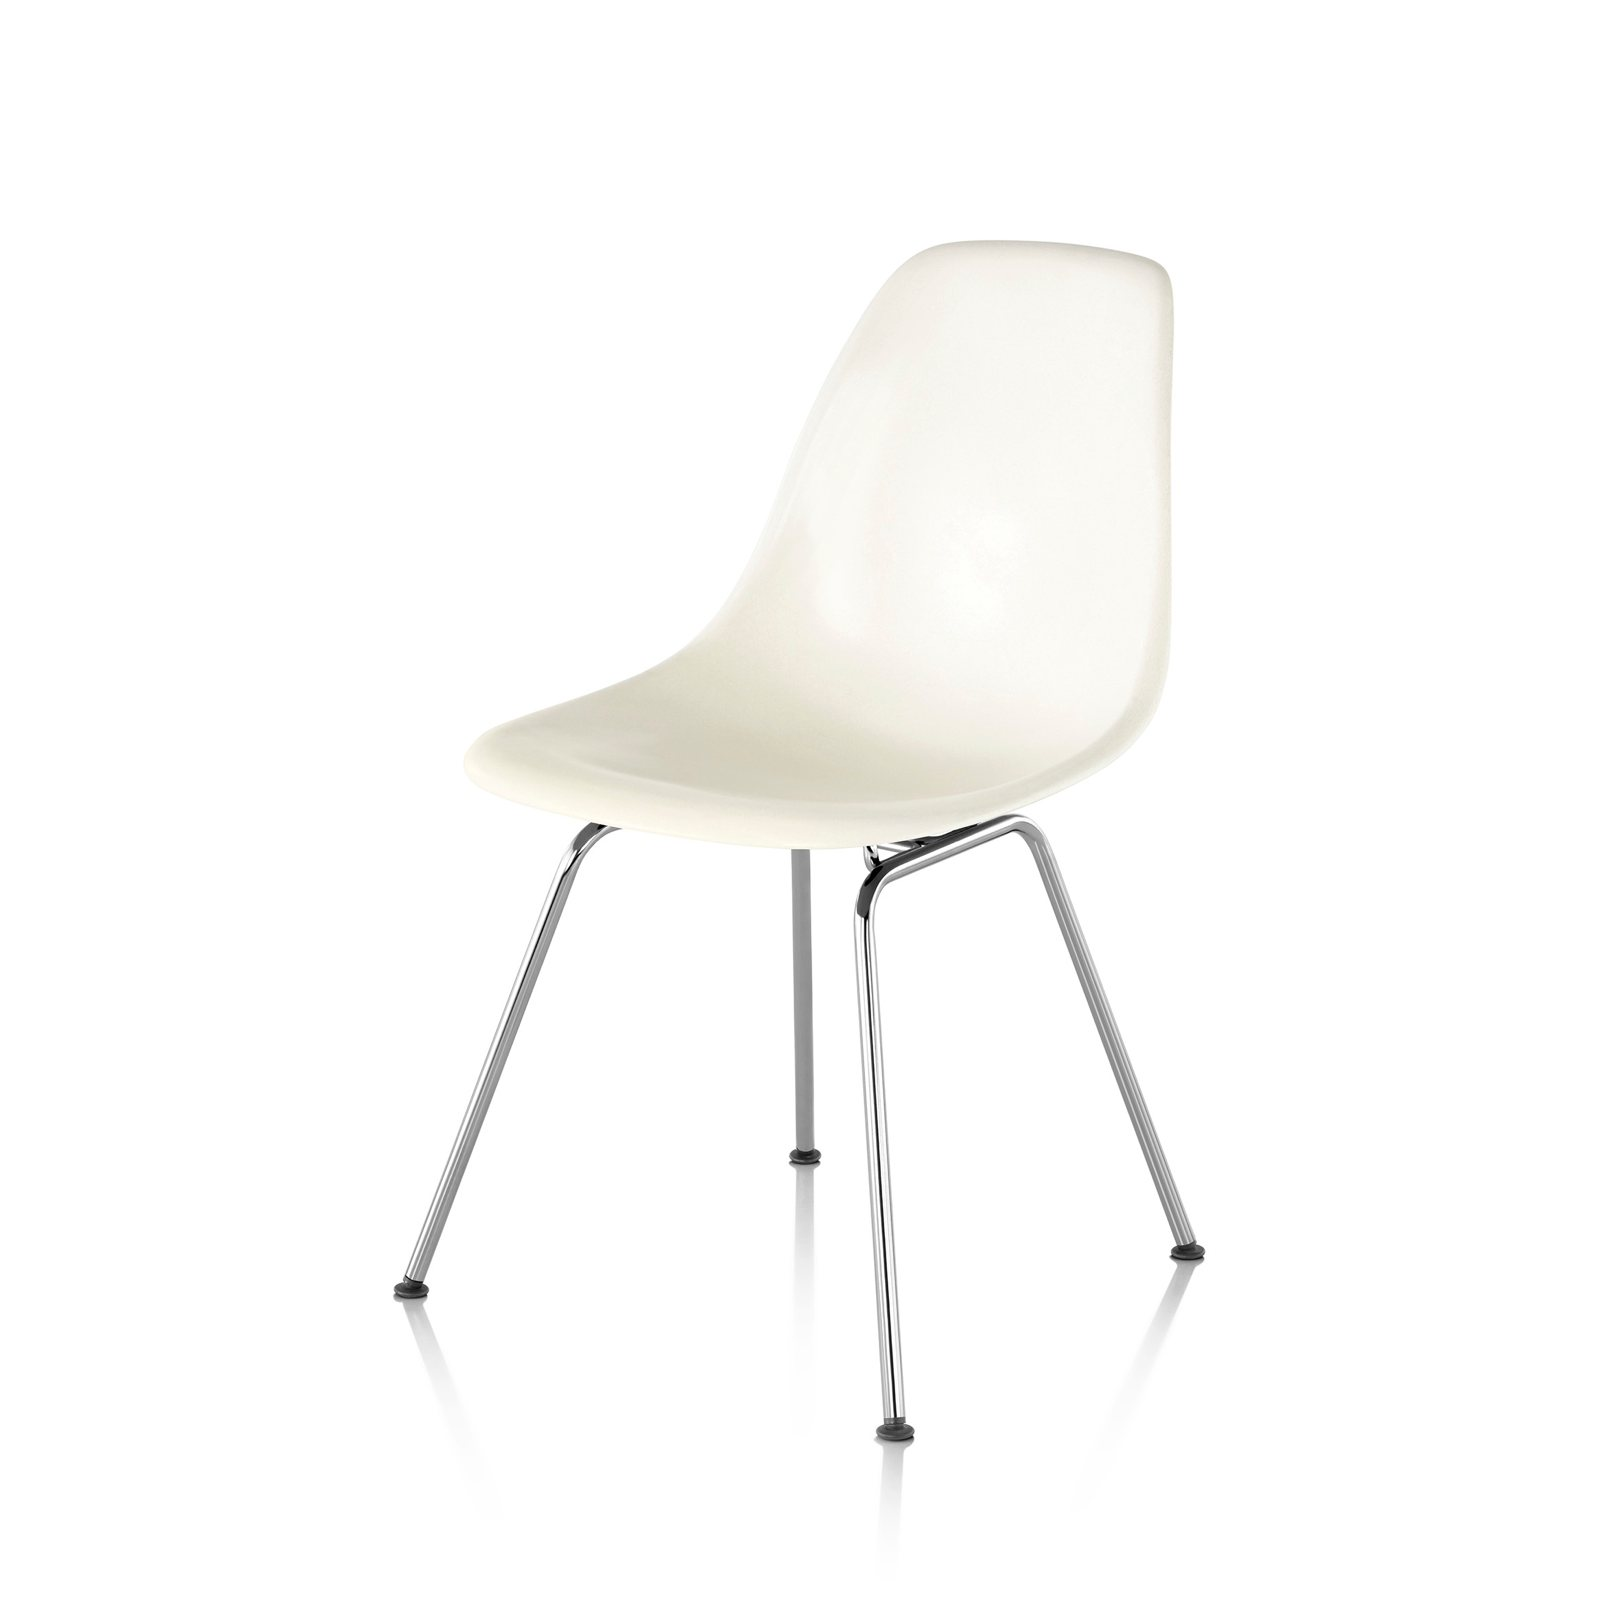 Eames Molded Plastic Side Chair 4Leg Base by Charles Ray Eames